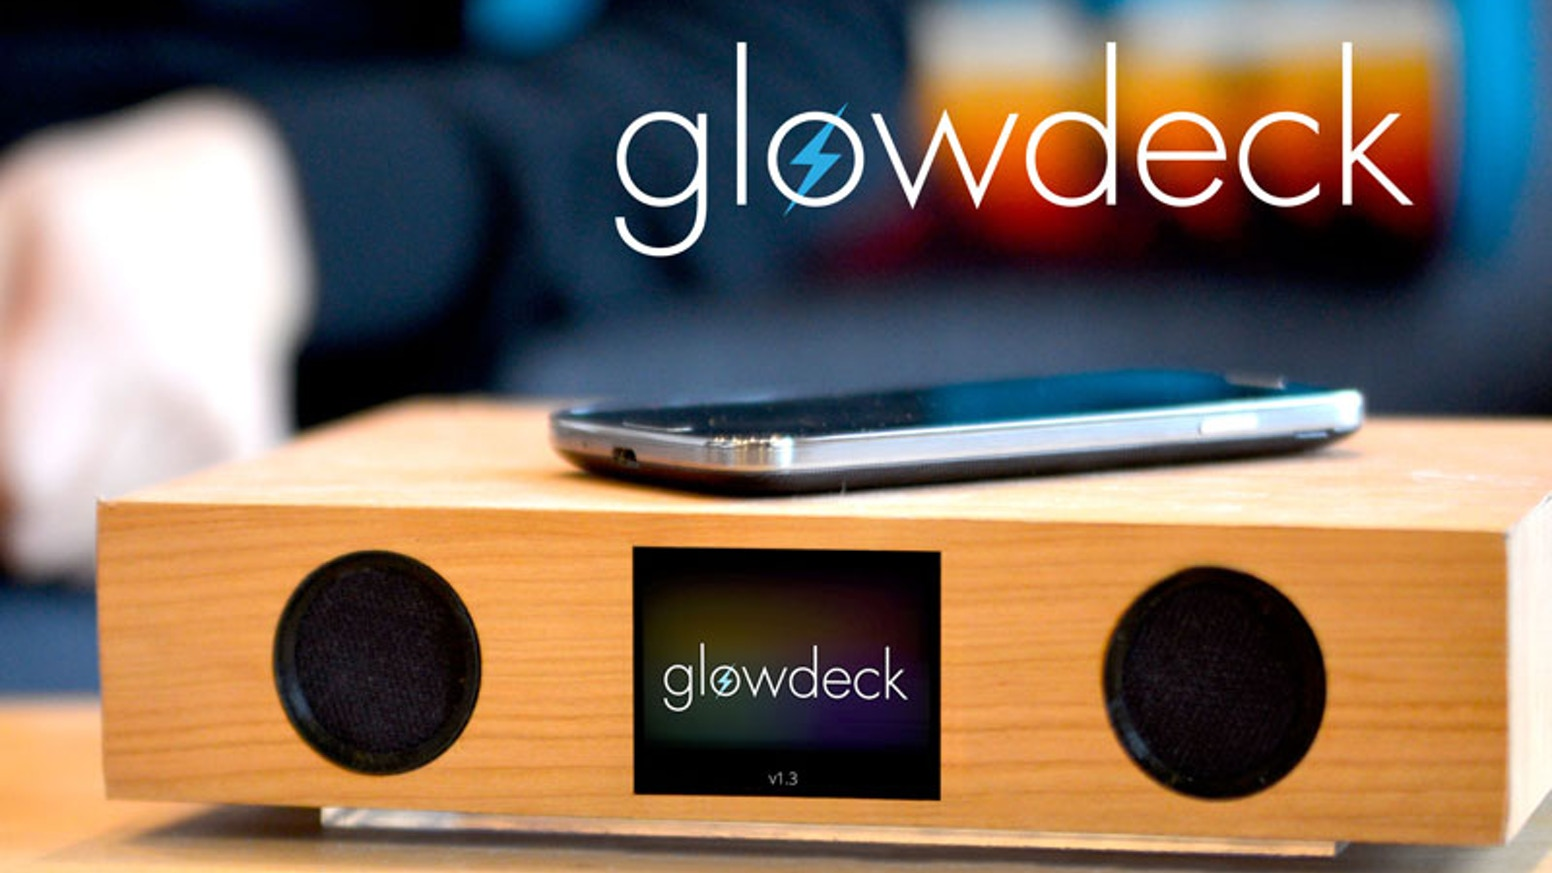 Glowdeck is a wireless charger, Bluetooth speaker, LED light system, and wifi-enabled notifications platform called Streams.